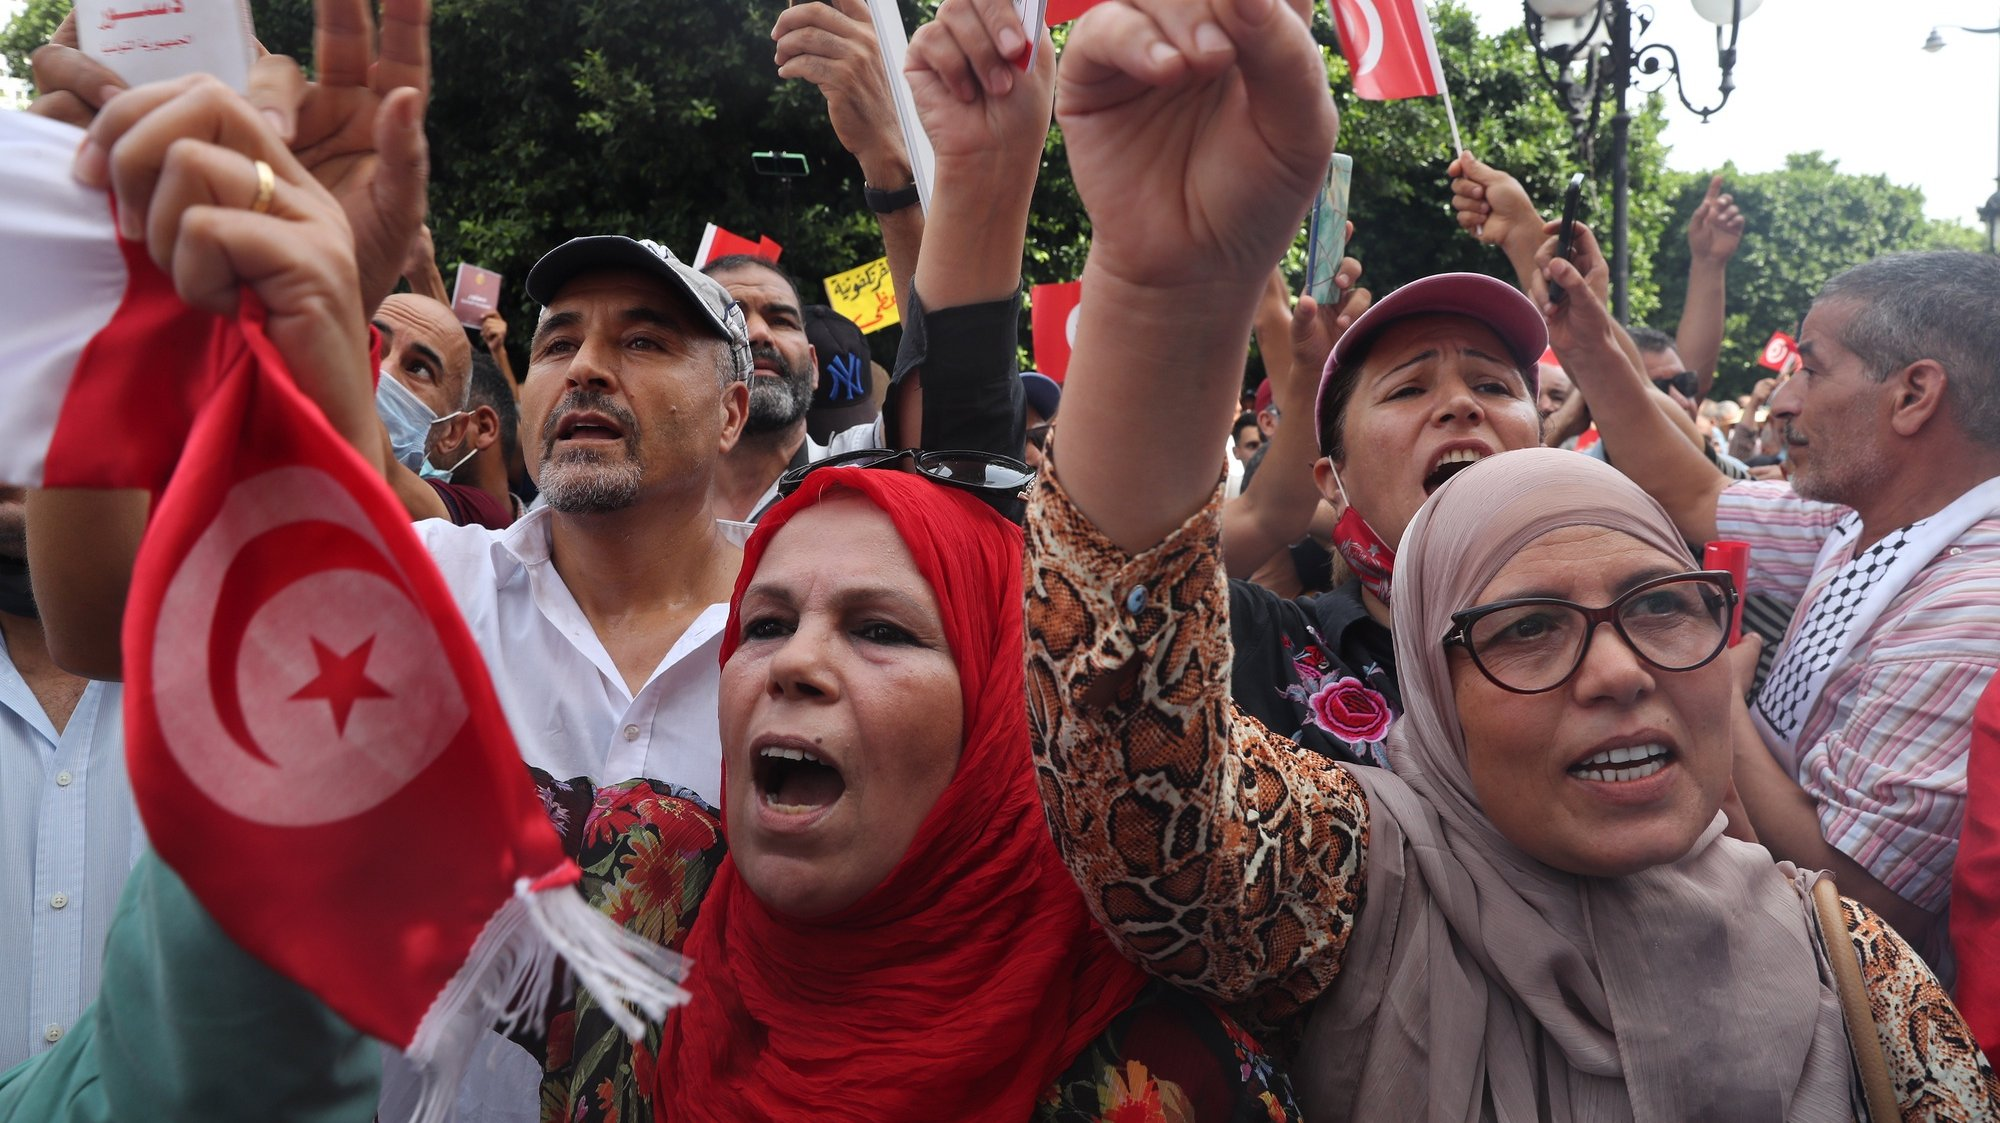 epa09489668 Opponents of Tunisia's President Kais Saied shout slogans as they take part in a protest against what they call his coup on 25 July, in Tunis, Tunisia, 26 September 2021. Tunisian President Saied suspended the country's parliament and dismiss the Prime Minister Hichem Mechichi on 25 July 2021.  EPA/MOHAMED MESSARA